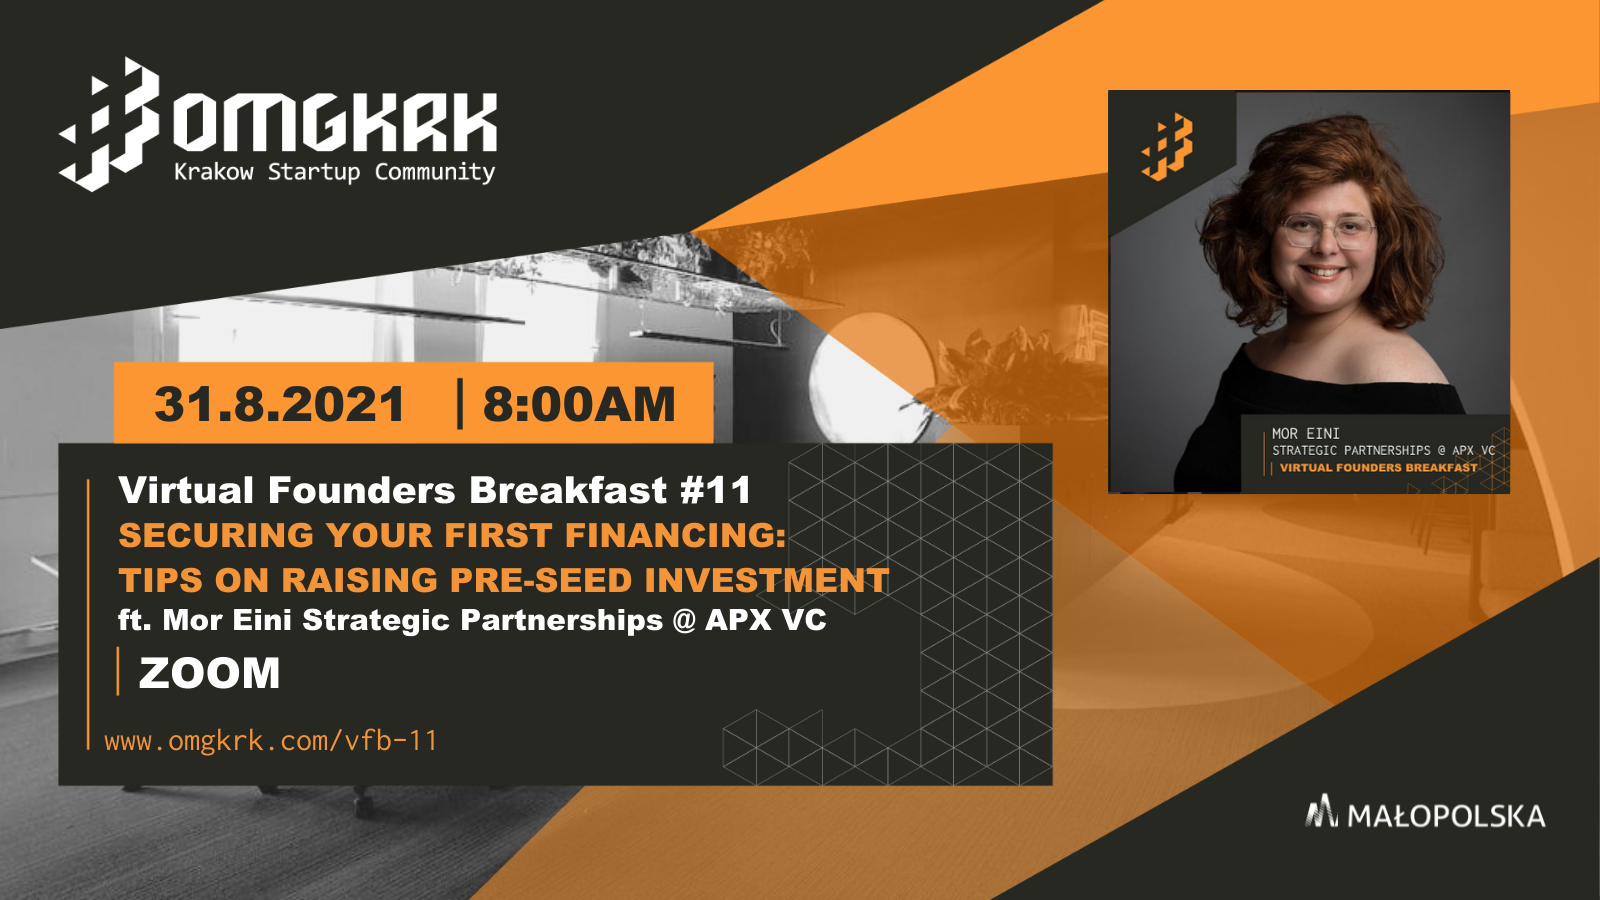 , Virtual Founders Breakfast #11: Tips On Securing Pre-Seed Financing ft. APX